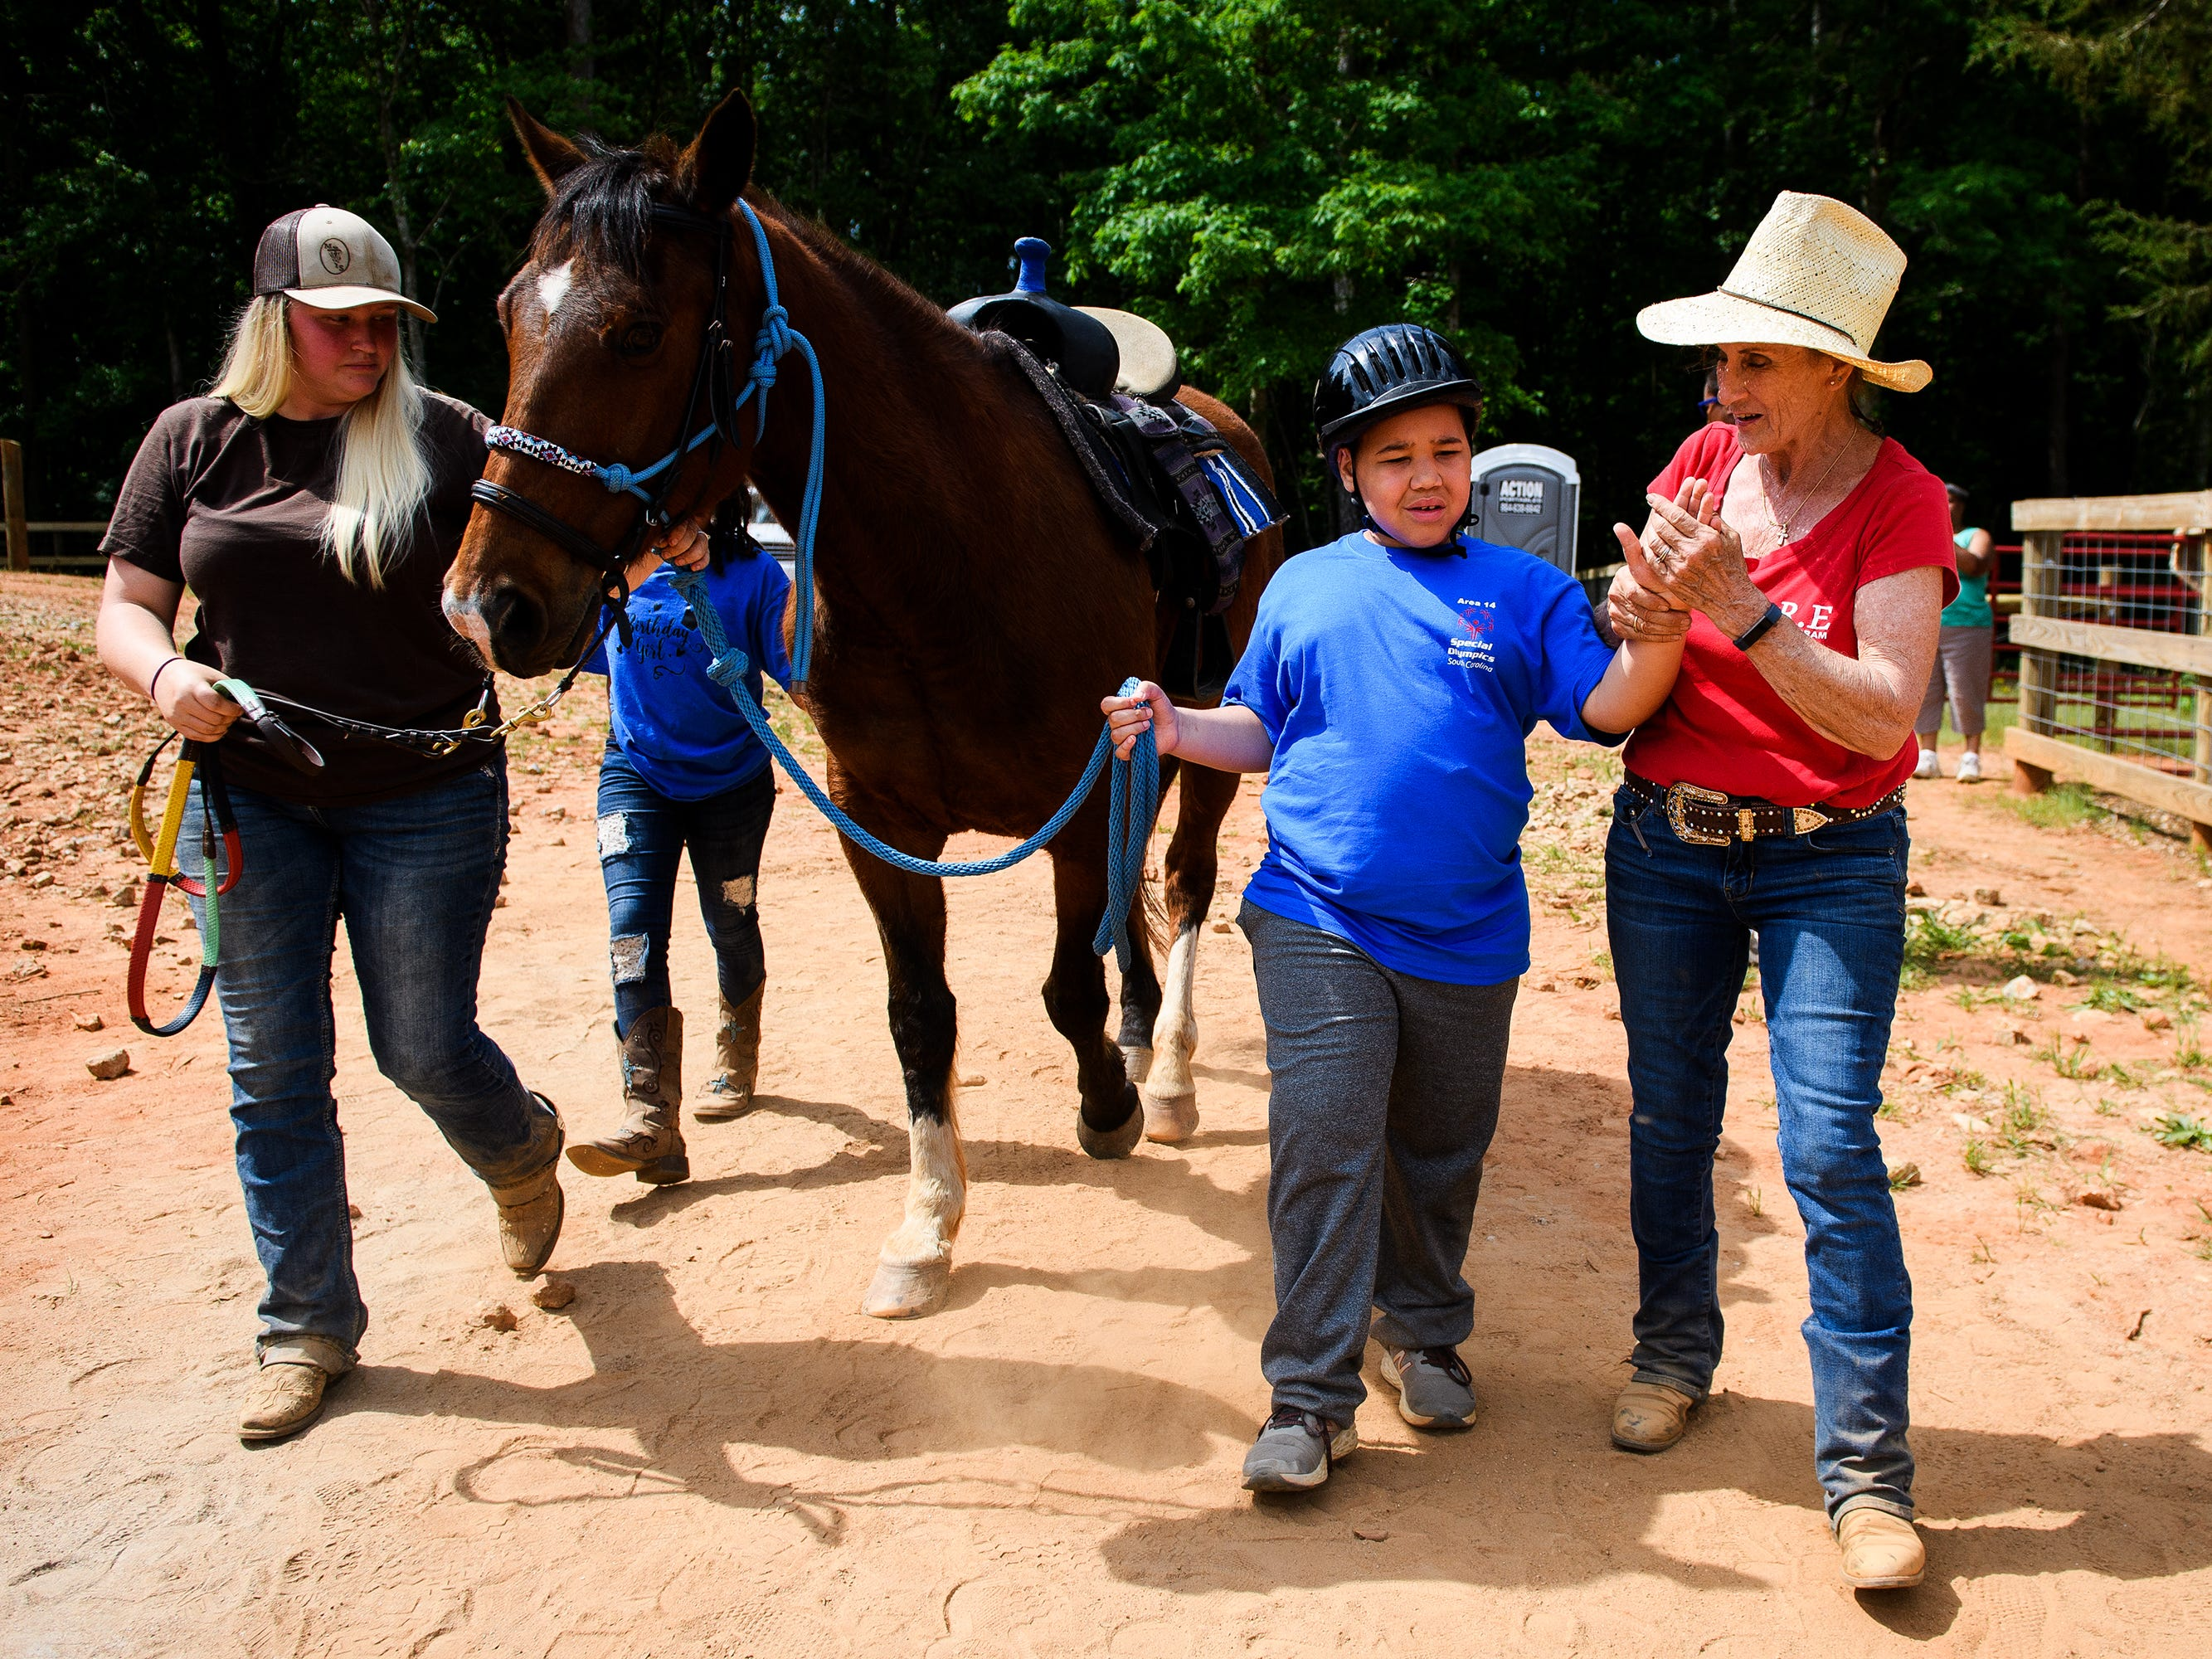 Justice Brown is assisted by volunteers Darlene Whitemore and Mara Harrison Todd as he makes his way to the obstacle course during a show day for students in the S.H.A.R.E. therapeutic riding program at J Rest Farm, Saturday, May 4, 2019.